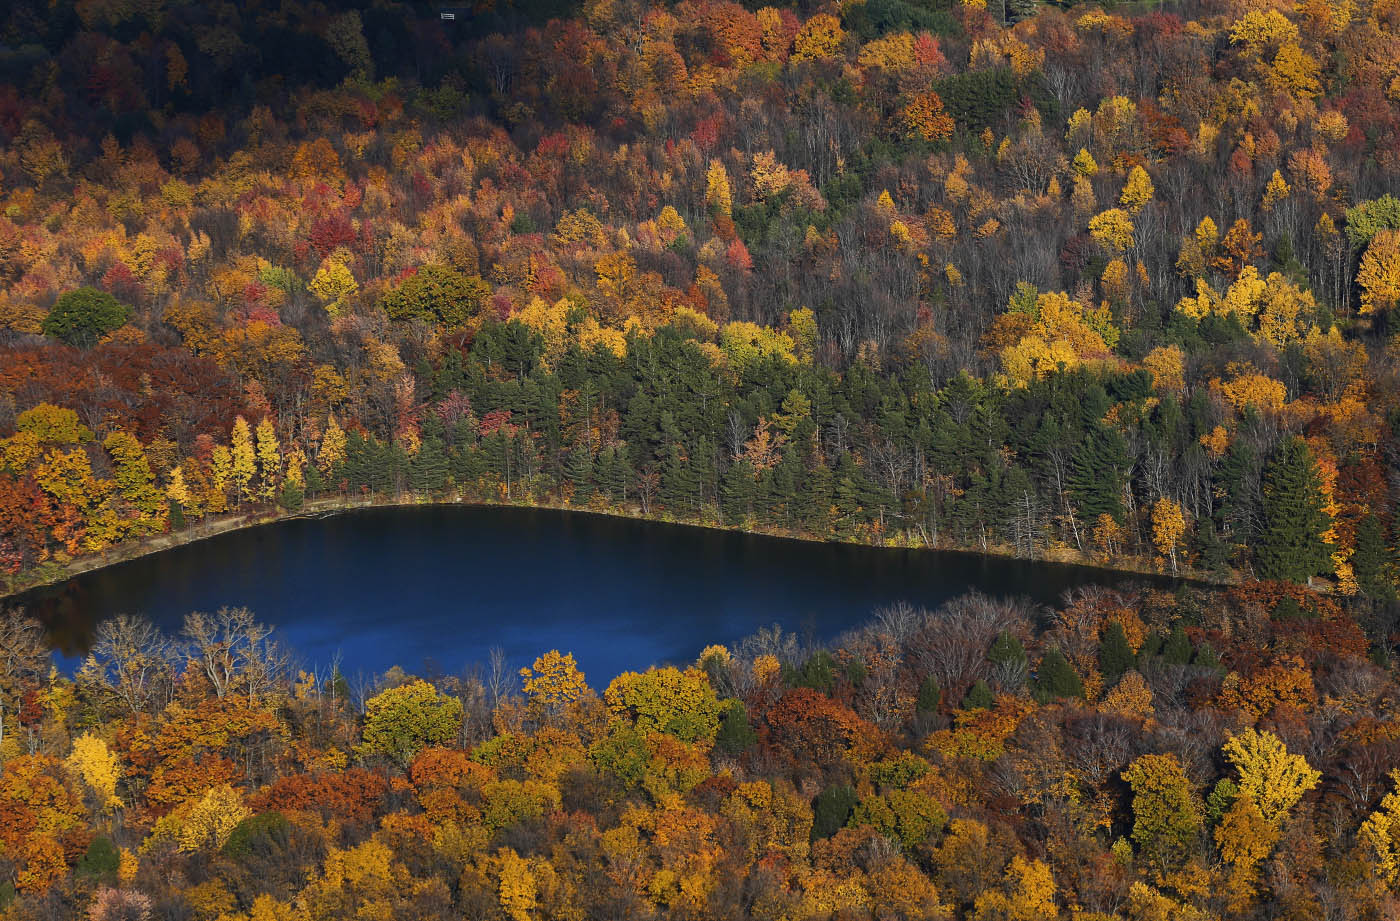 The forest surrounding the lake in Chestnut Ridge Park in Orchard Park still shows lots of autumn color, Friday, Nov. 4, 2016. (Derek Gee/Buffalo News)